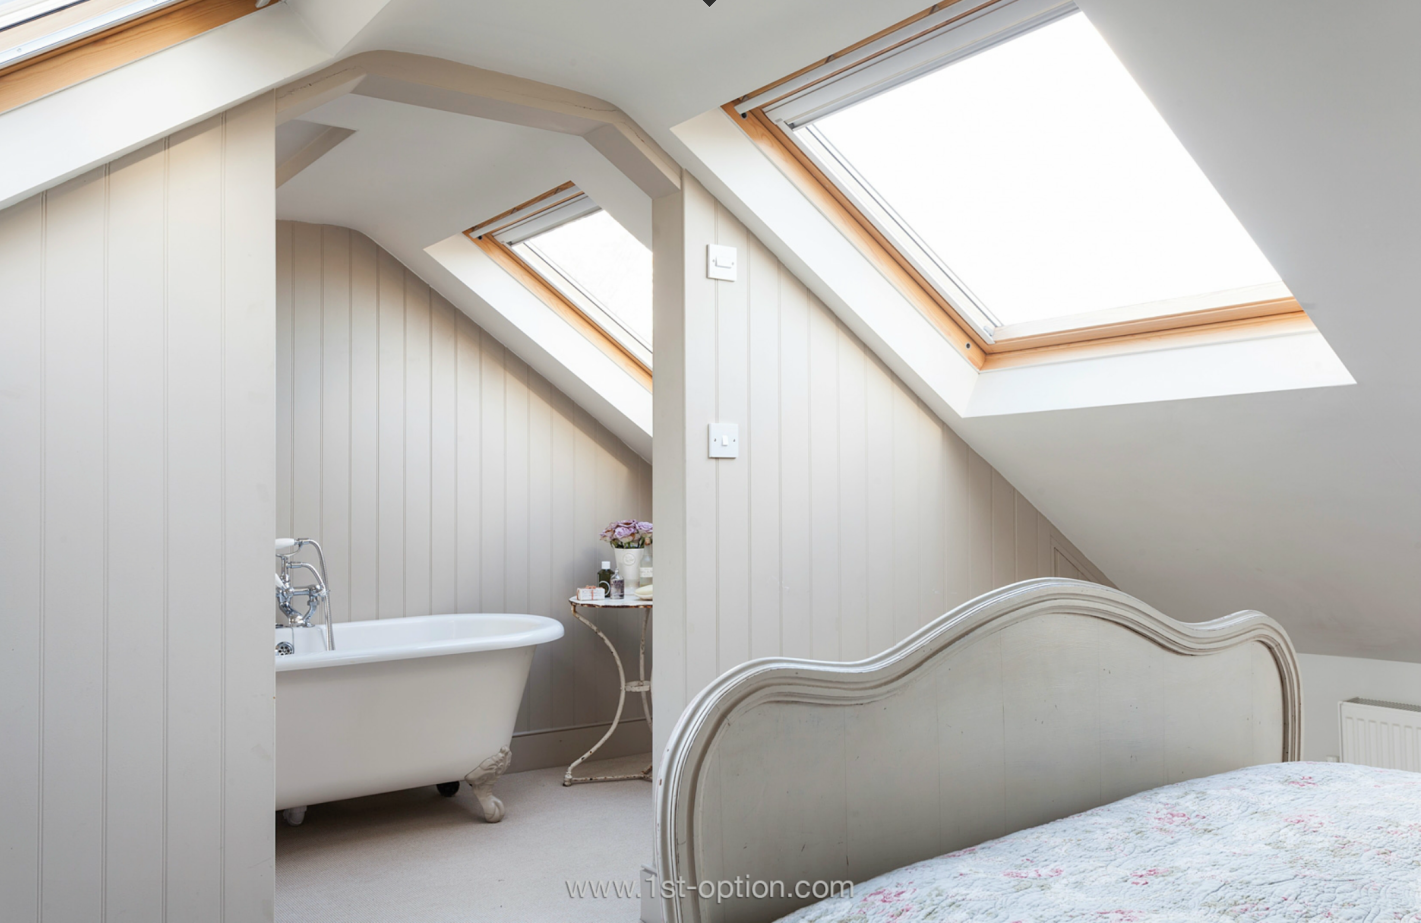 Loft Conversion Bedroom Design Have Gained Tremendous Popularity Over Past  Years.